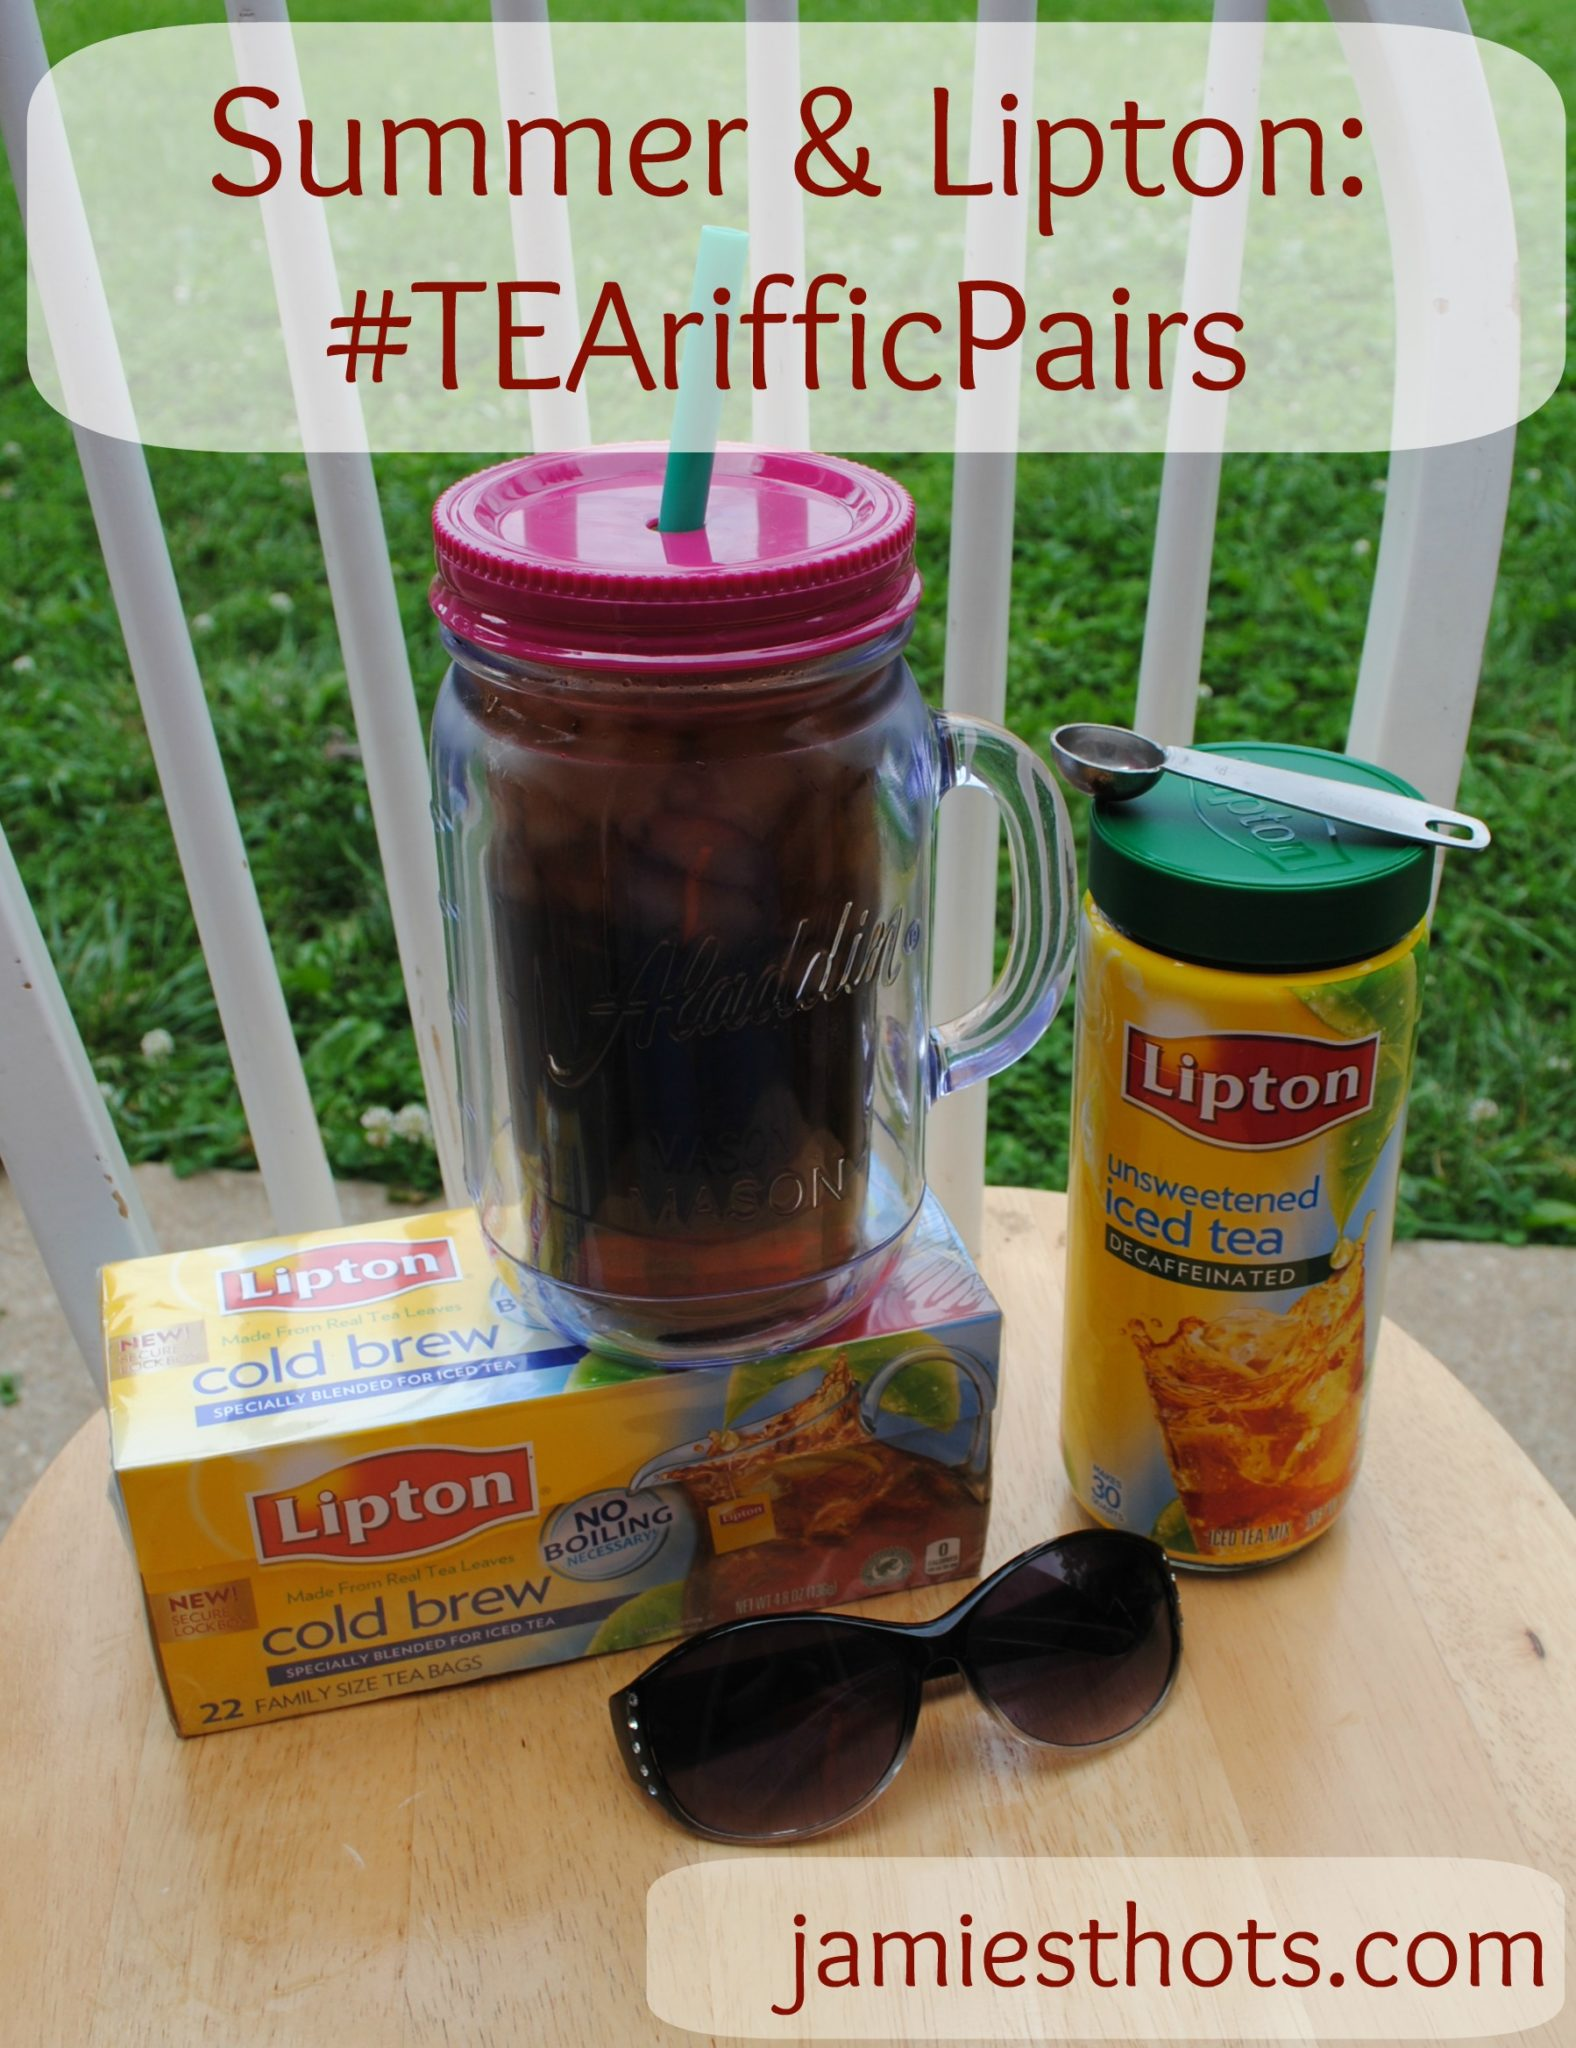 Some cool summer fun made even better with Lipton tea